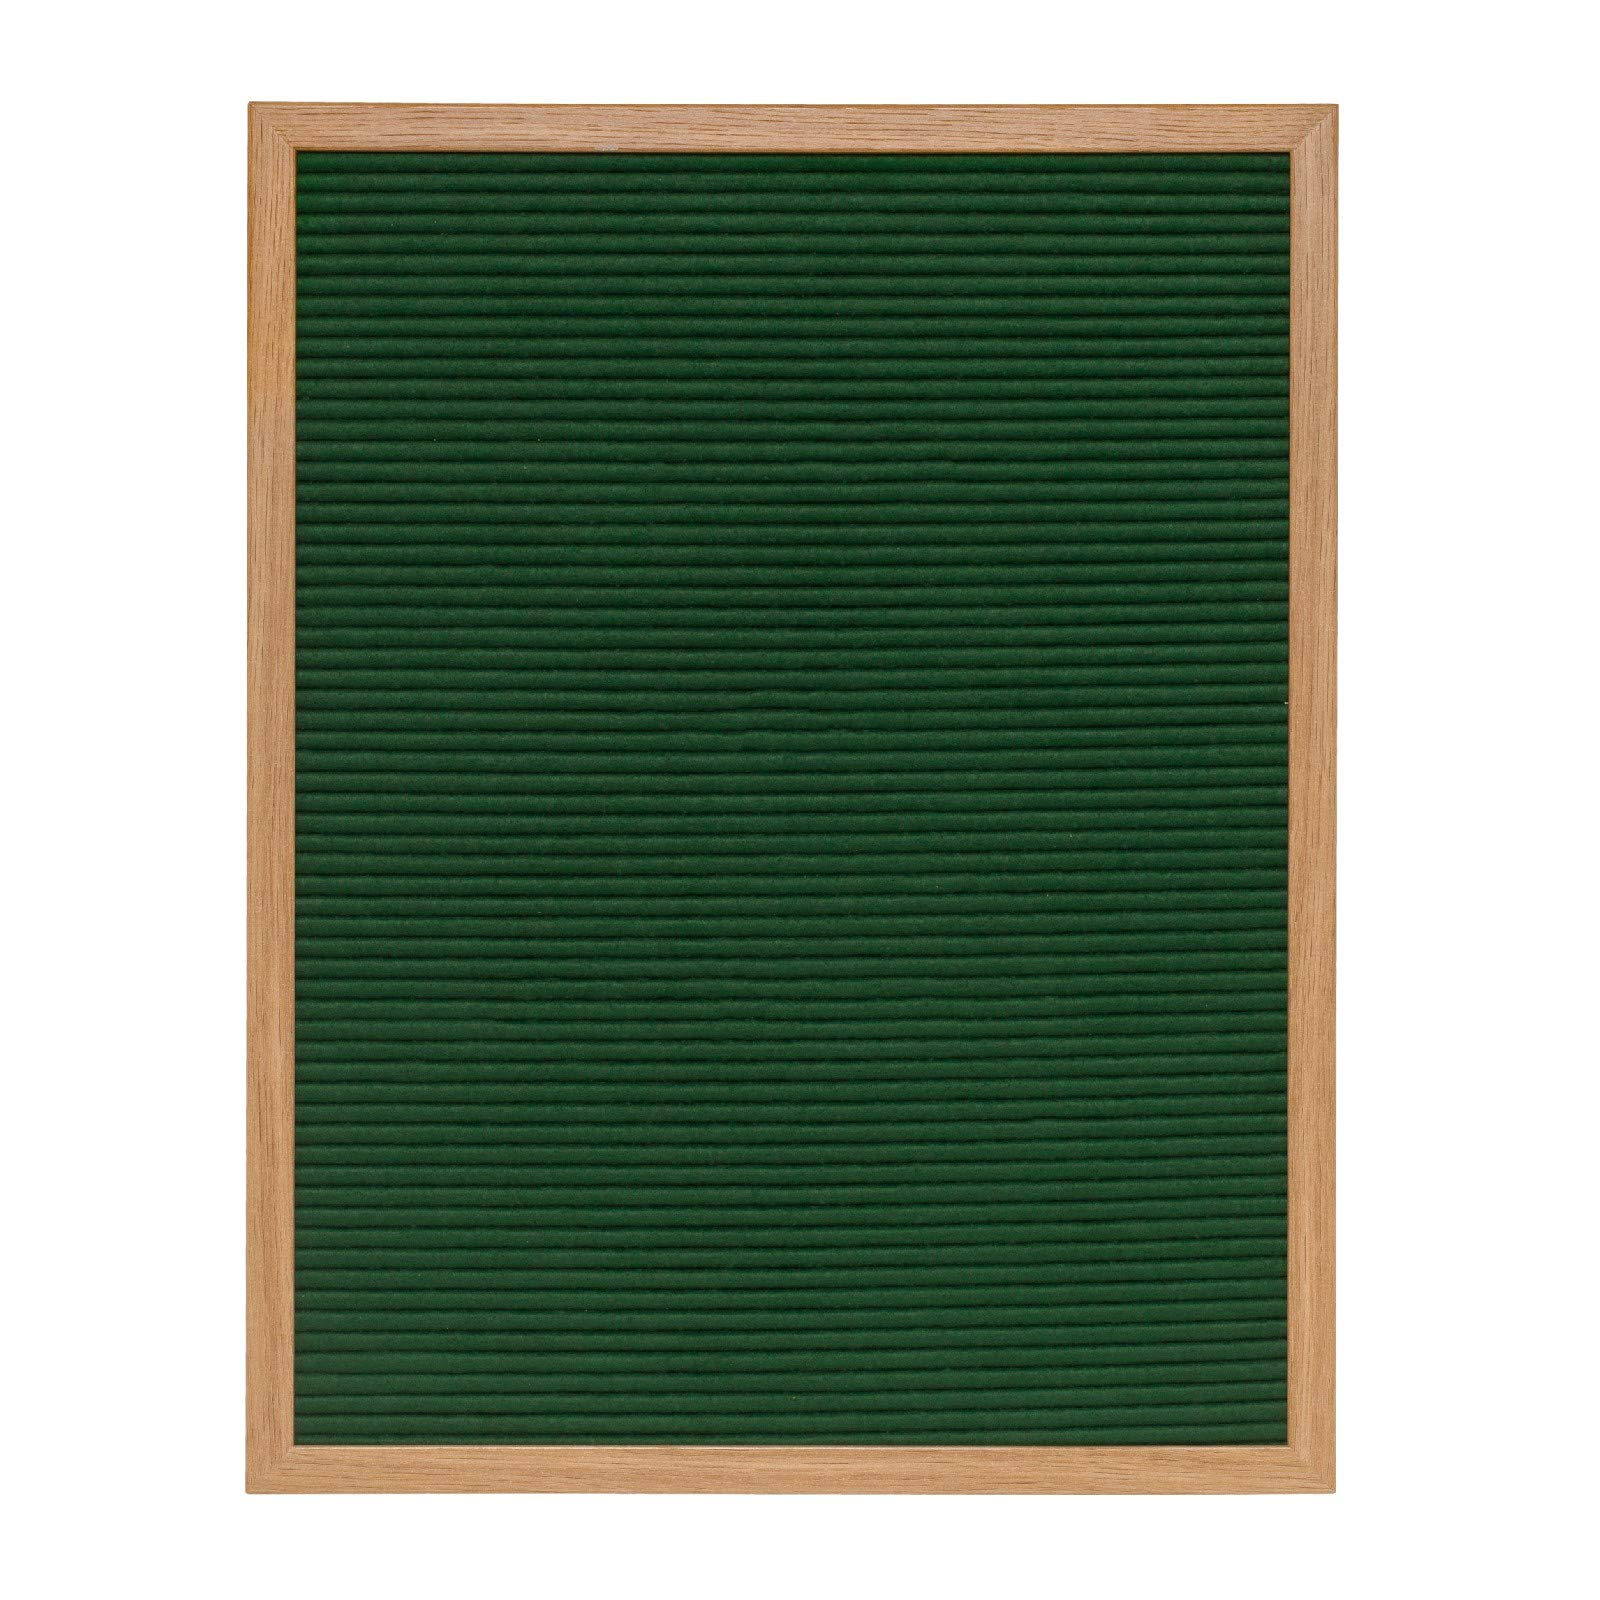 Green Felt Letter Board 16x20 inches. Includes 290 Changeable Letters & Symbols Free Bonus Bag for Storing Letters